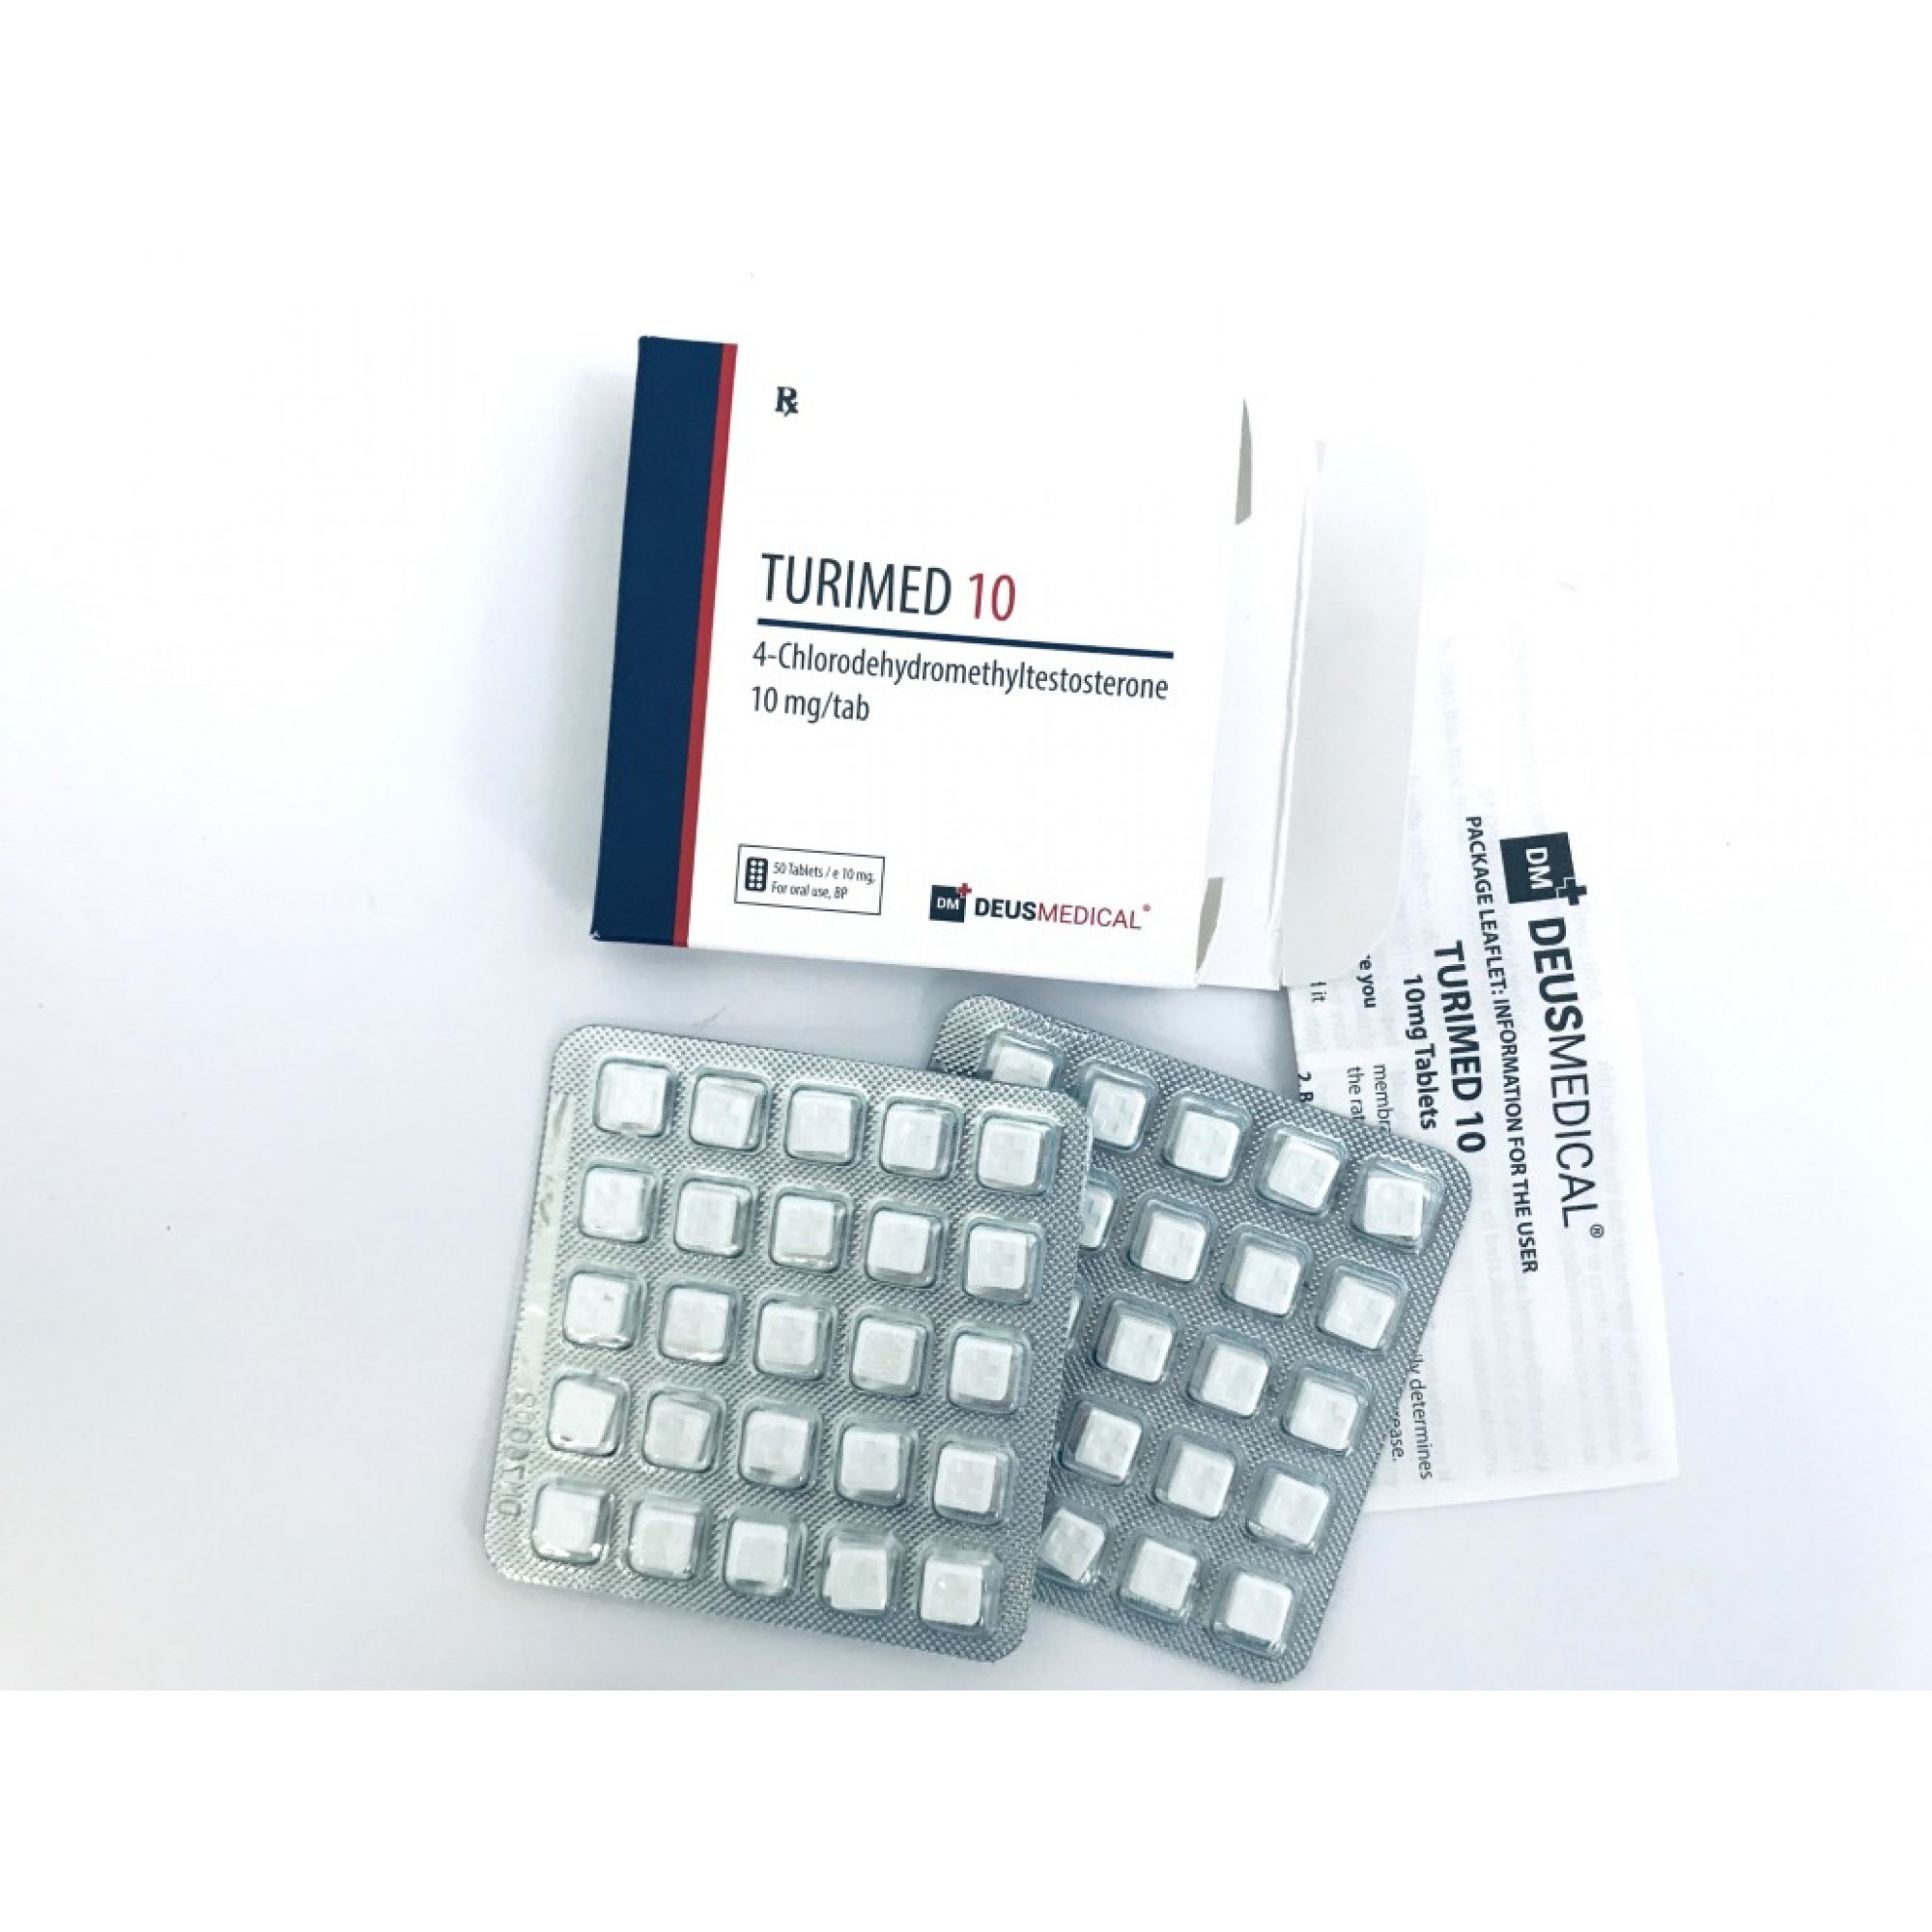 TURIMED 10 (Turinabol), DEUS MEDICAL, BUY STEROIDS ONLINE - www.DEUSPOWER.com